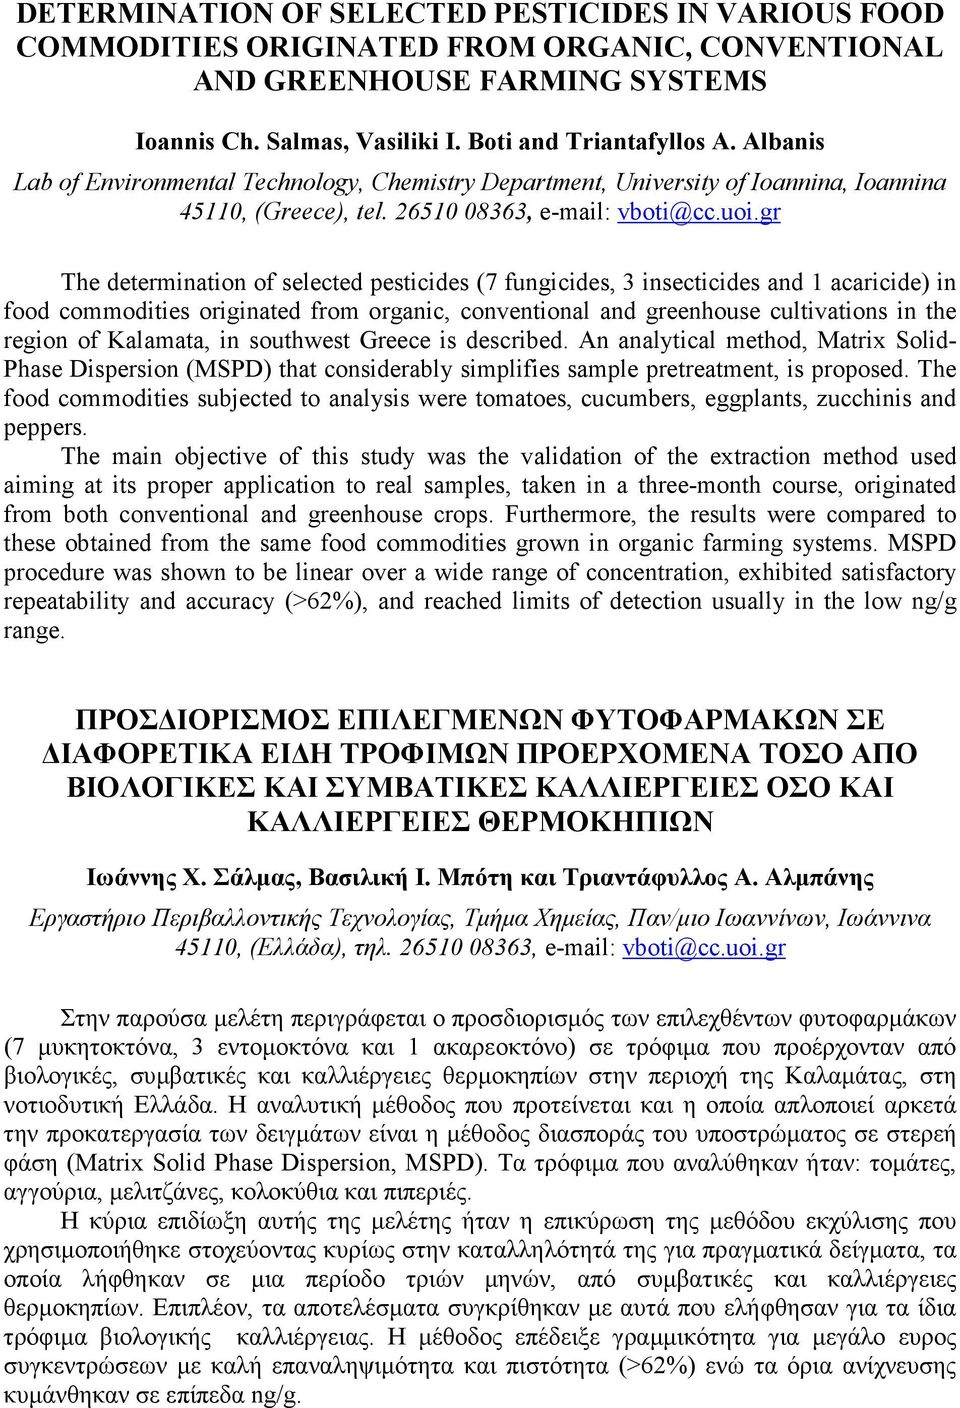 gr The determination of selected pesticides (7 fungicides, insecticides and 1 acaricide) in food commodities originated from organic, conventional and greenhouse cultivations in the region of